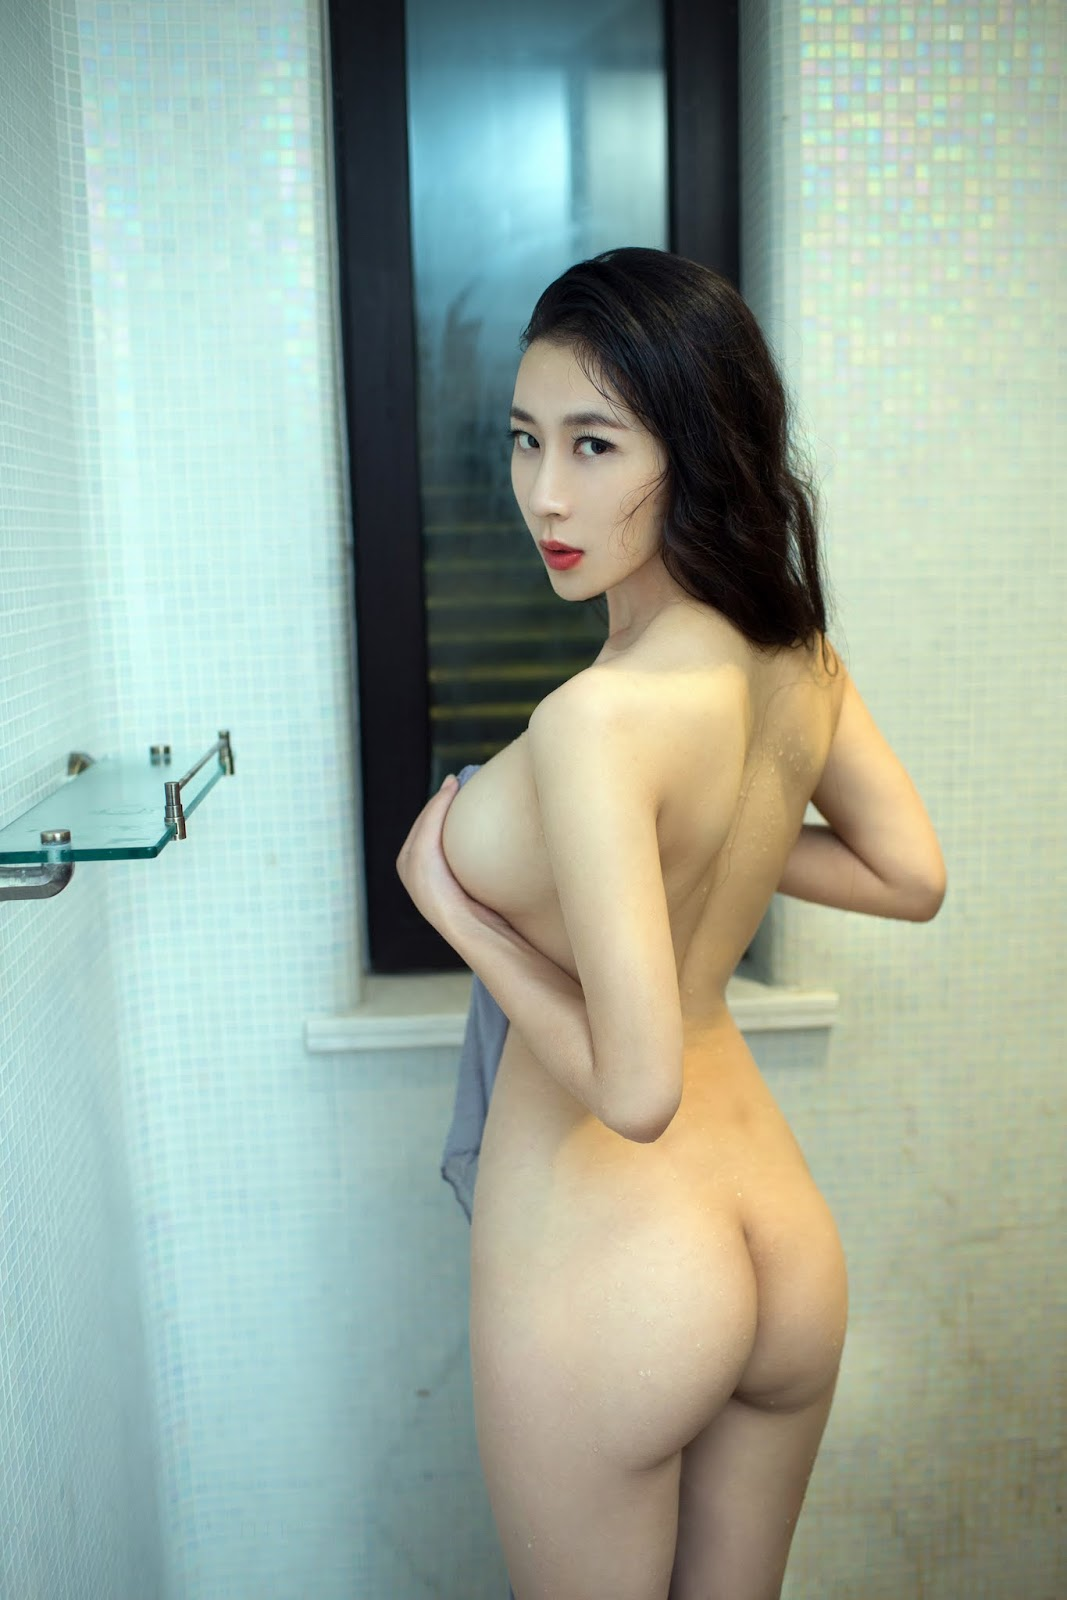 40 - Model Hot Naked TUIGIRL NO.47